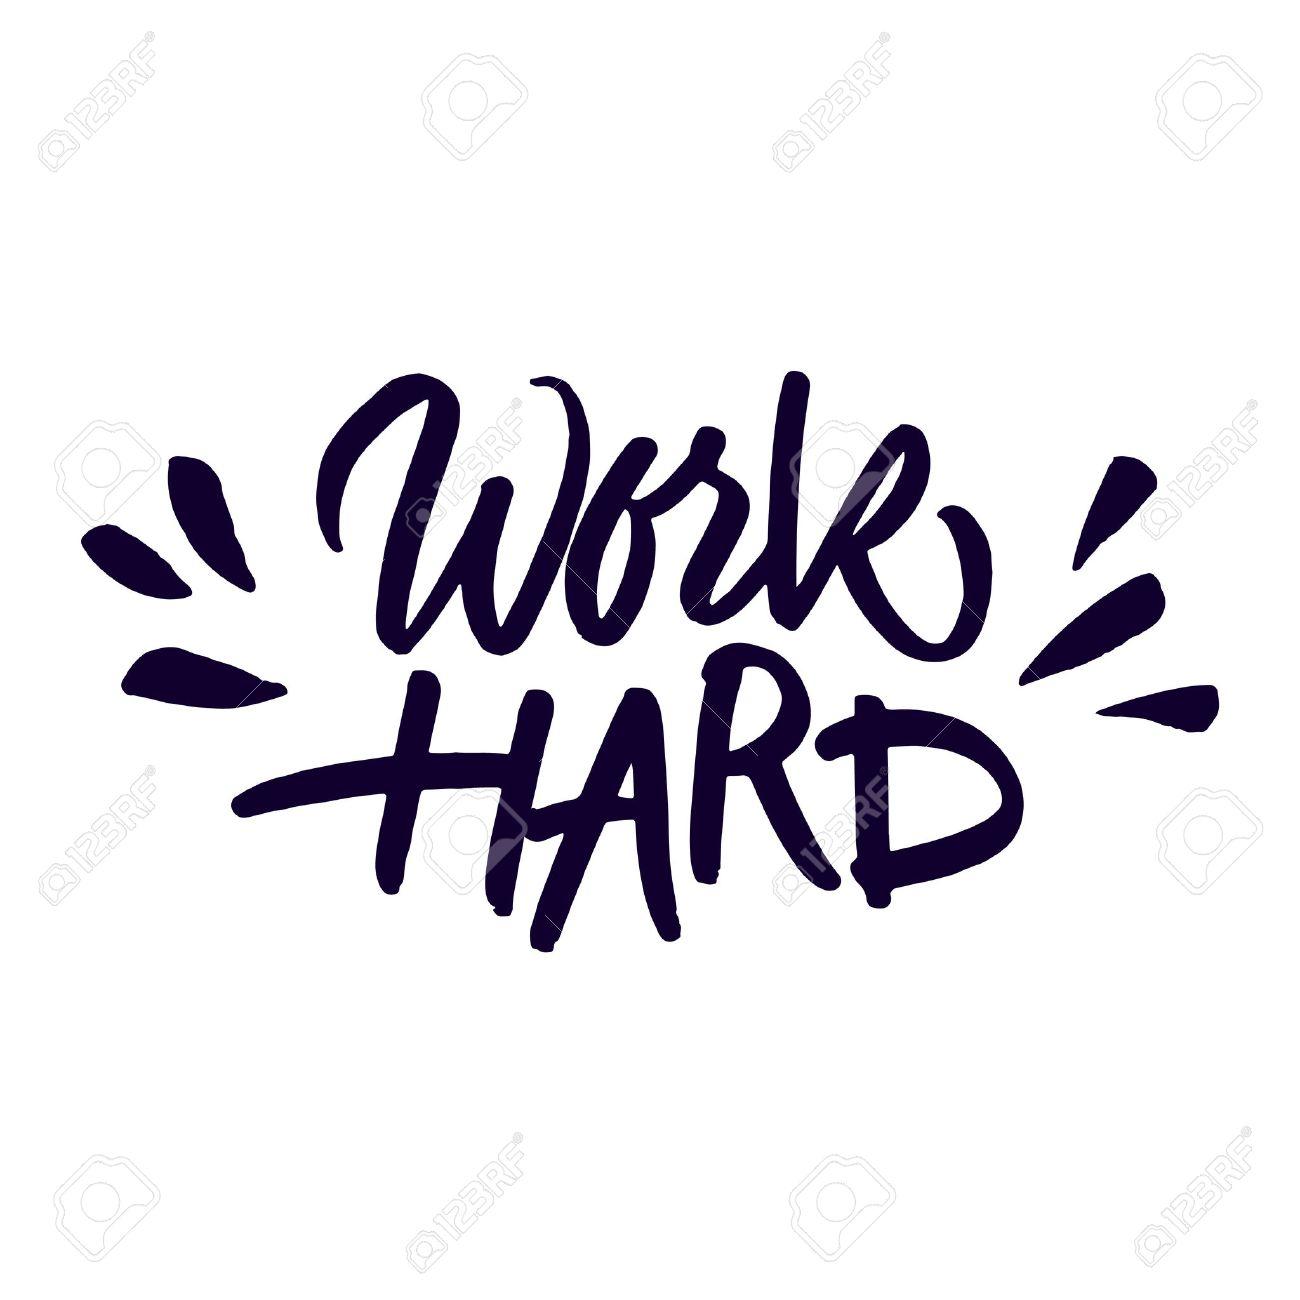 Work Inspirational Quotes Handwritten Inspirational Quote 'work Hard'expressive Brush